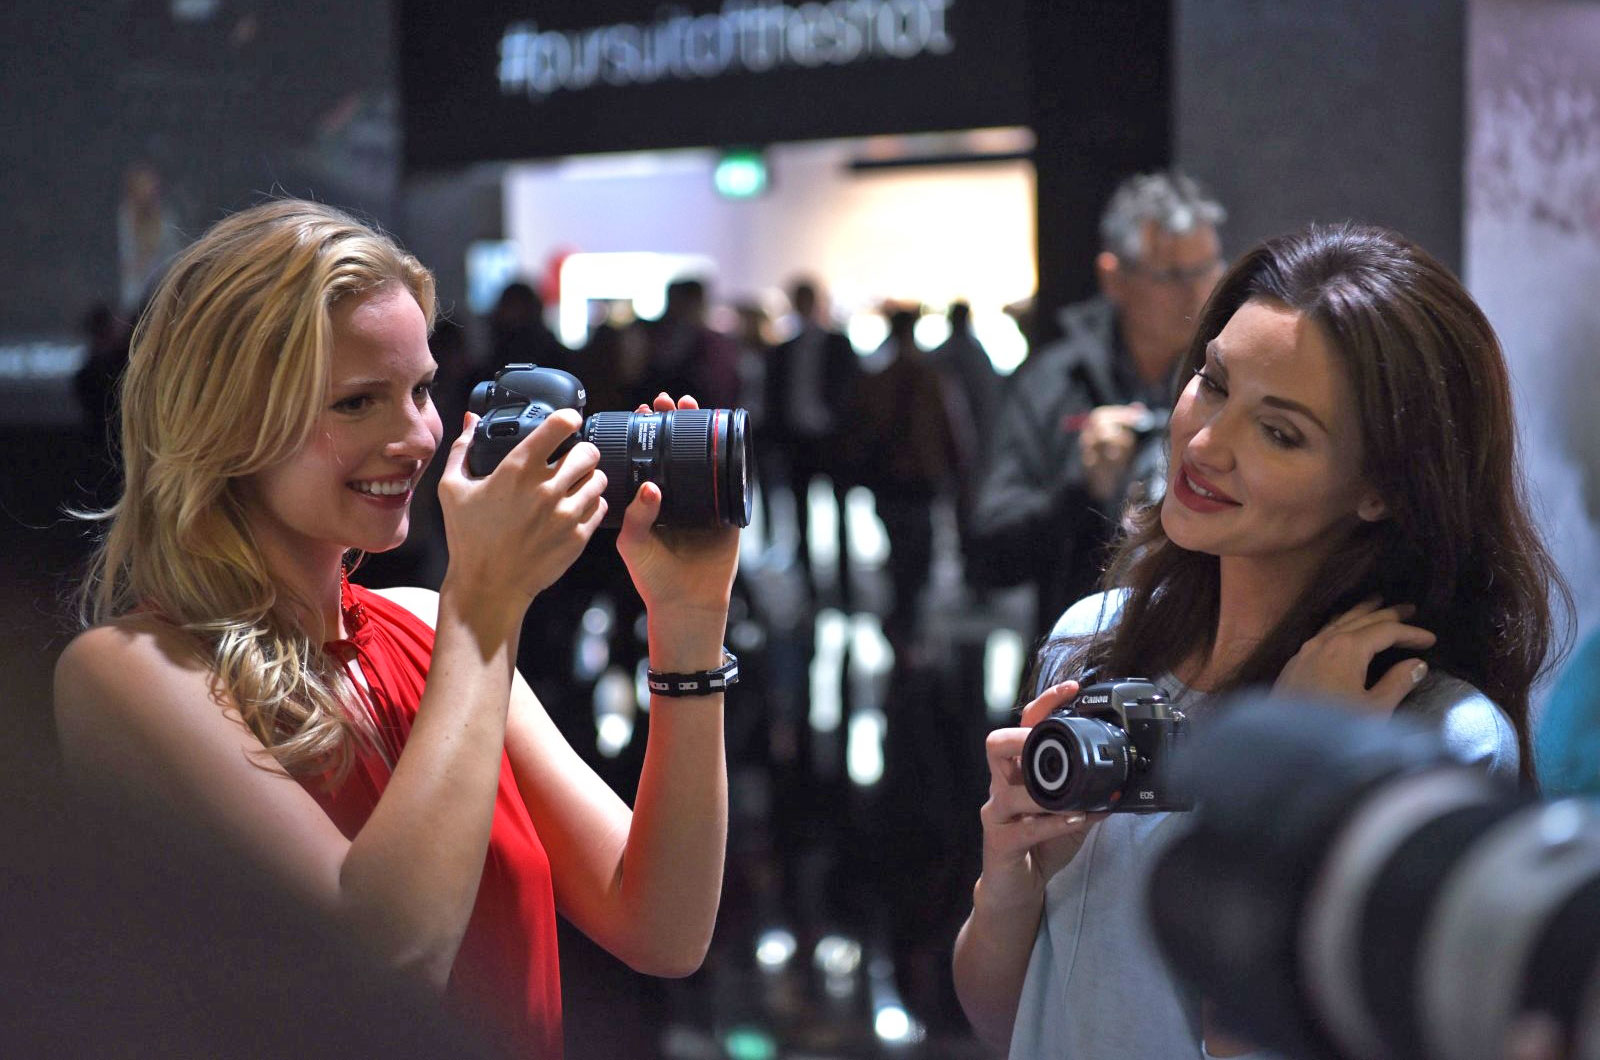 We're live from Photokina 2018!